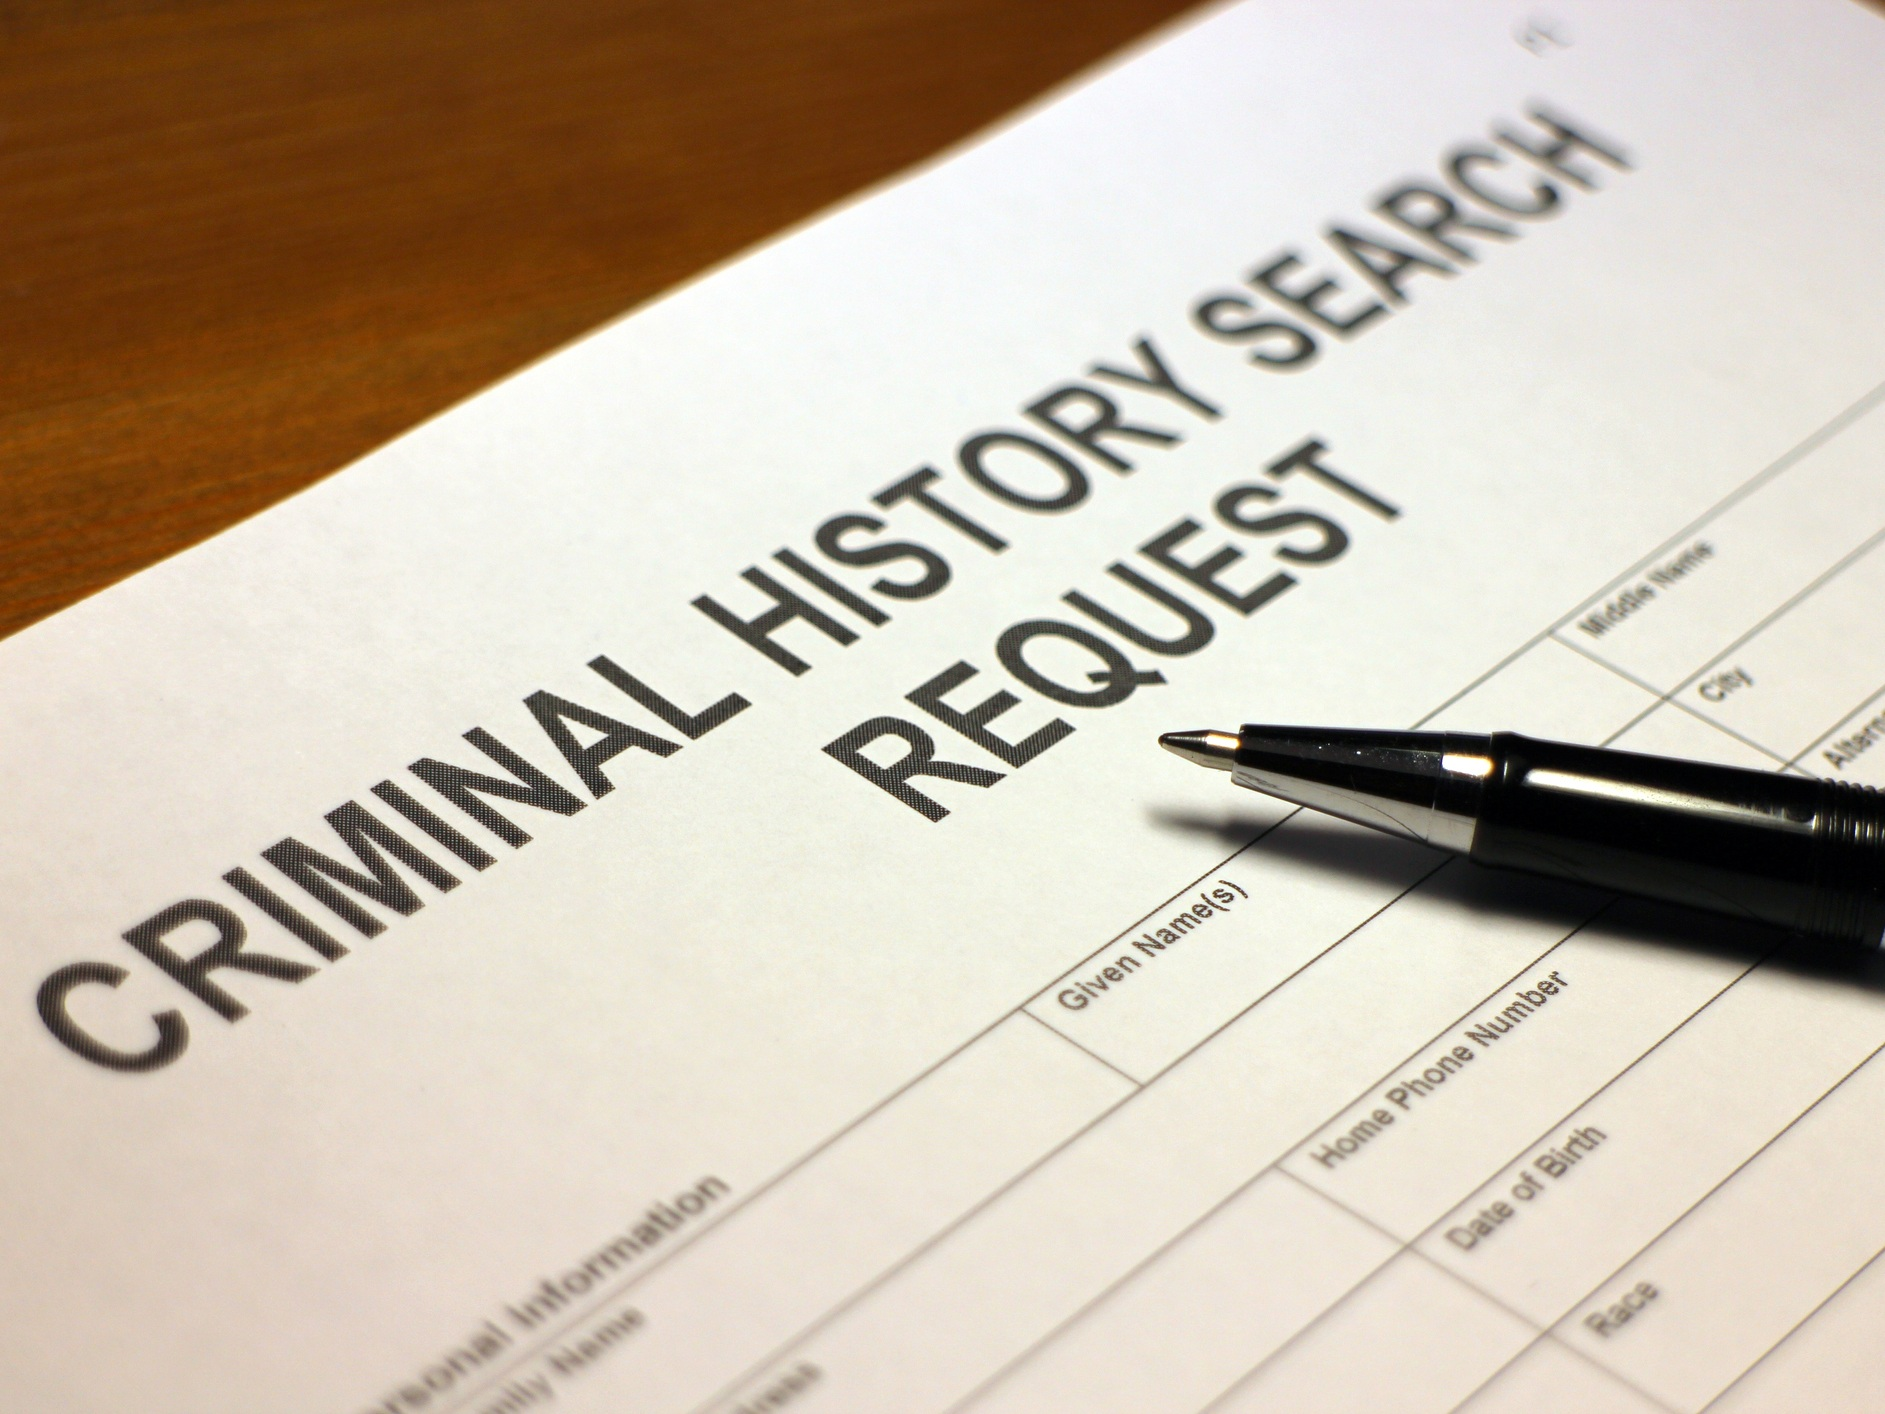 background investigations - We offer a complete range of personal & professional background investigations. We research & uncover pertinent, relevant information for prospective executive level employees, business partners, nannies, & more.